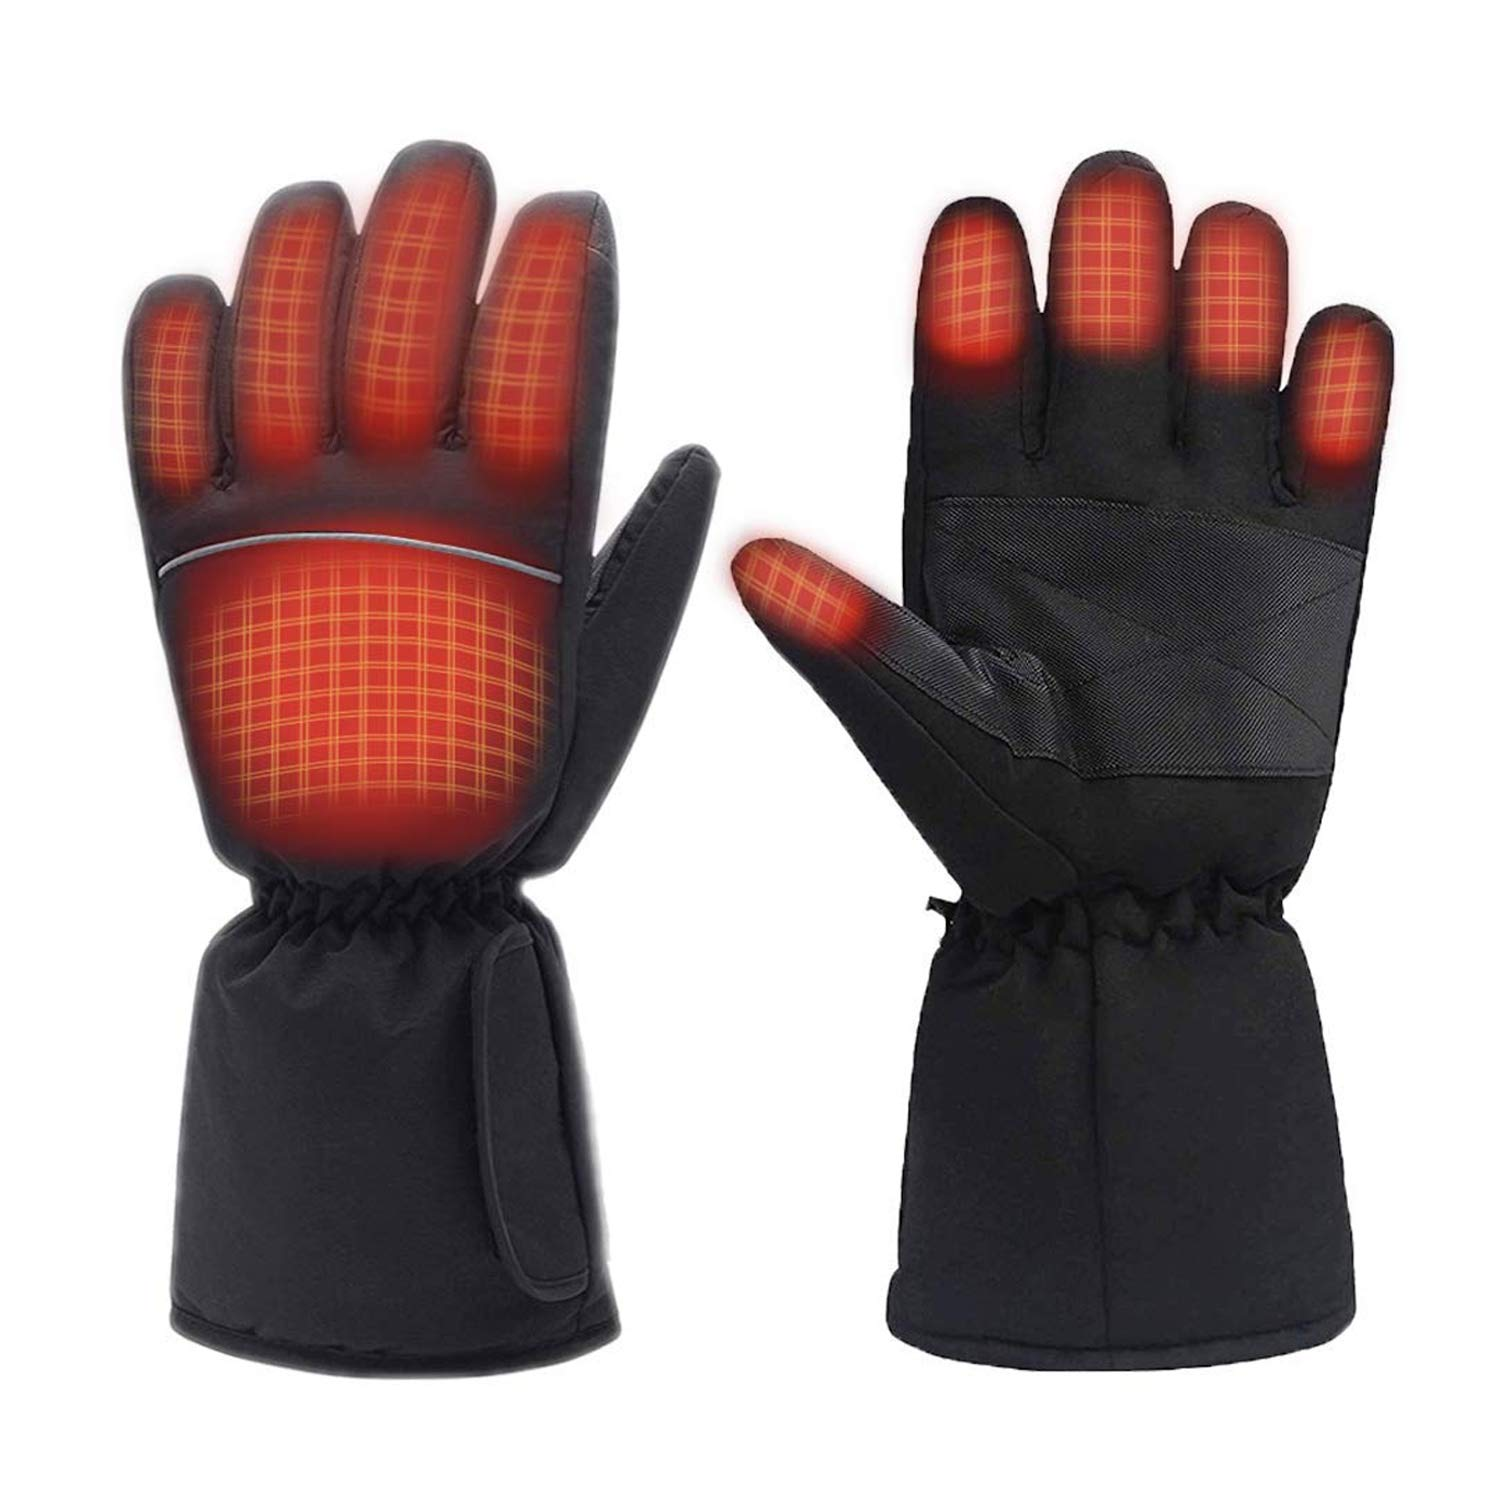 M.Jone Heated Gloves, Battery Powered Electric Heat Gloves for Women and Men, Waterproof Winter Thermal Gloves, Warm Touchscreen Gloves for Outdoor Sports Cycling Riding Skiing Skating Hiking Huntin. by M.Jone